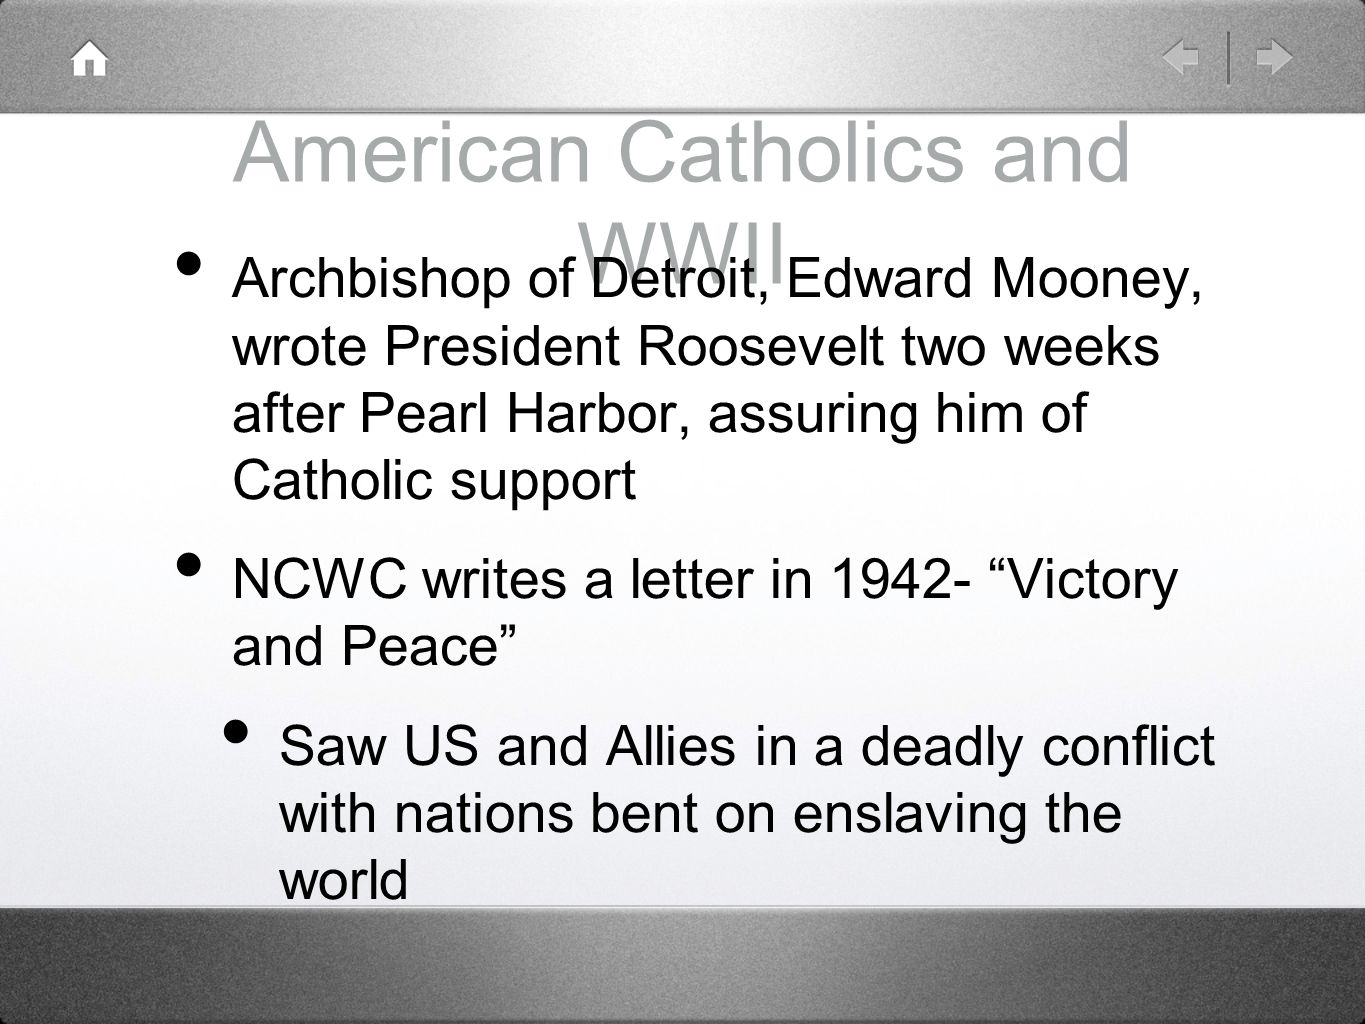 American Catholics and WWII